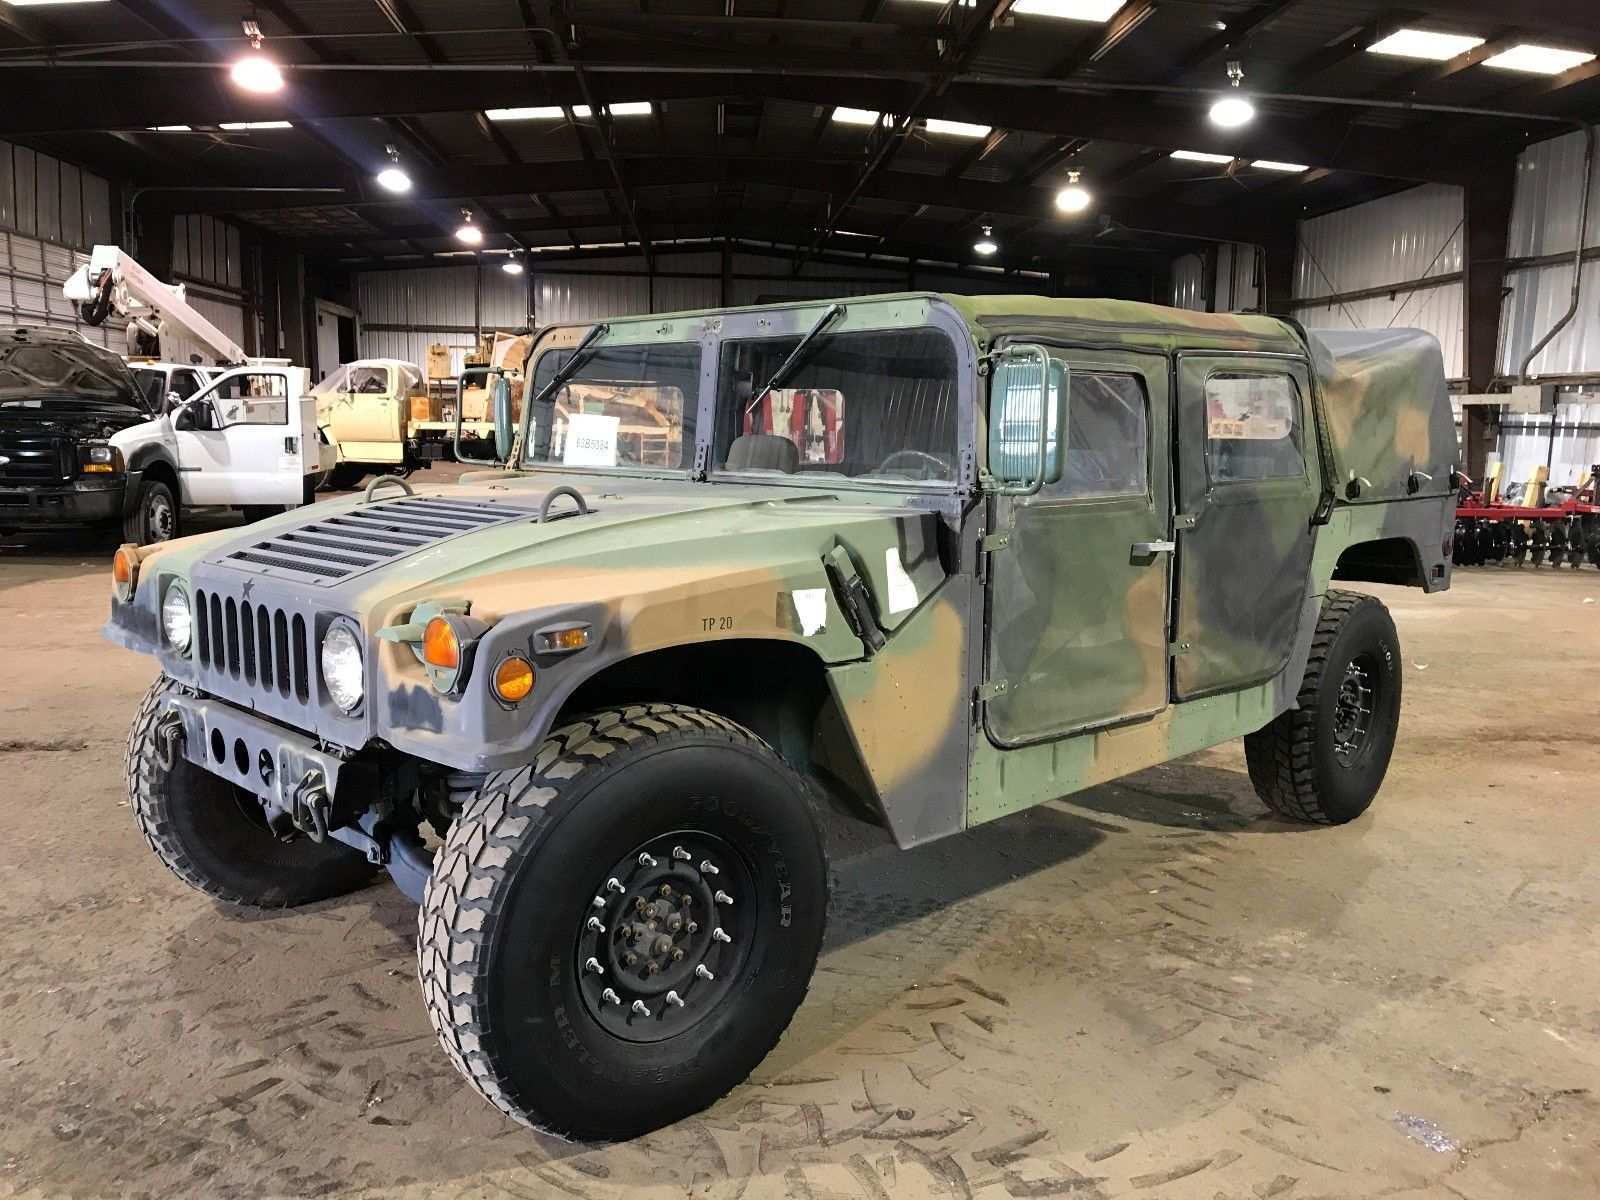 No Issues 1994 Am General Humvee Military Military Vehicles For Sale Military Vehicles Military